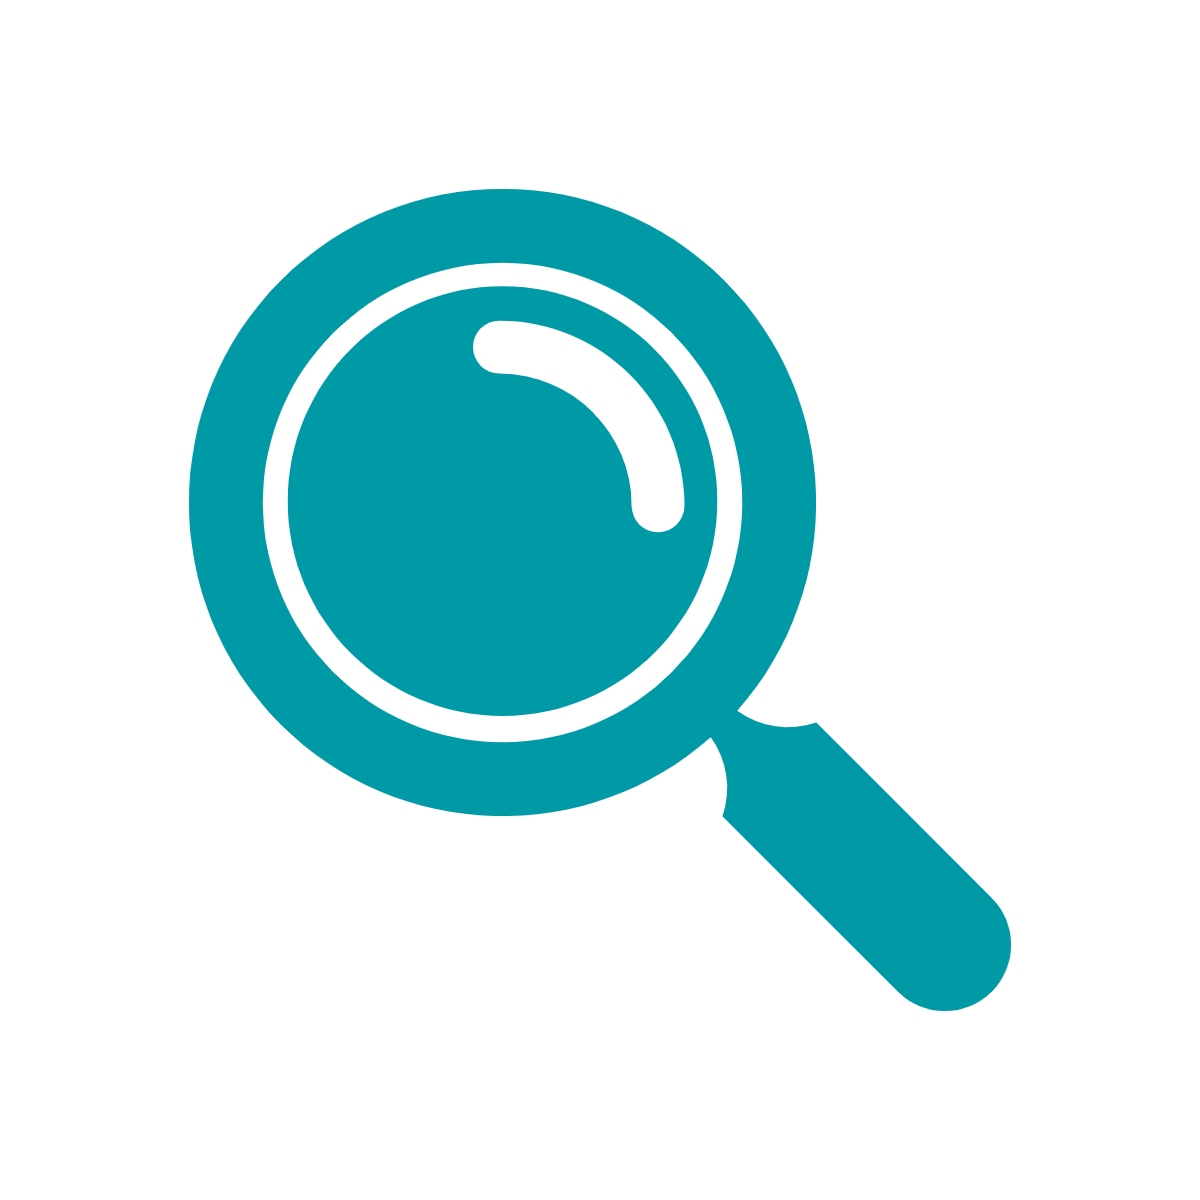 Green icon of magnifying glass